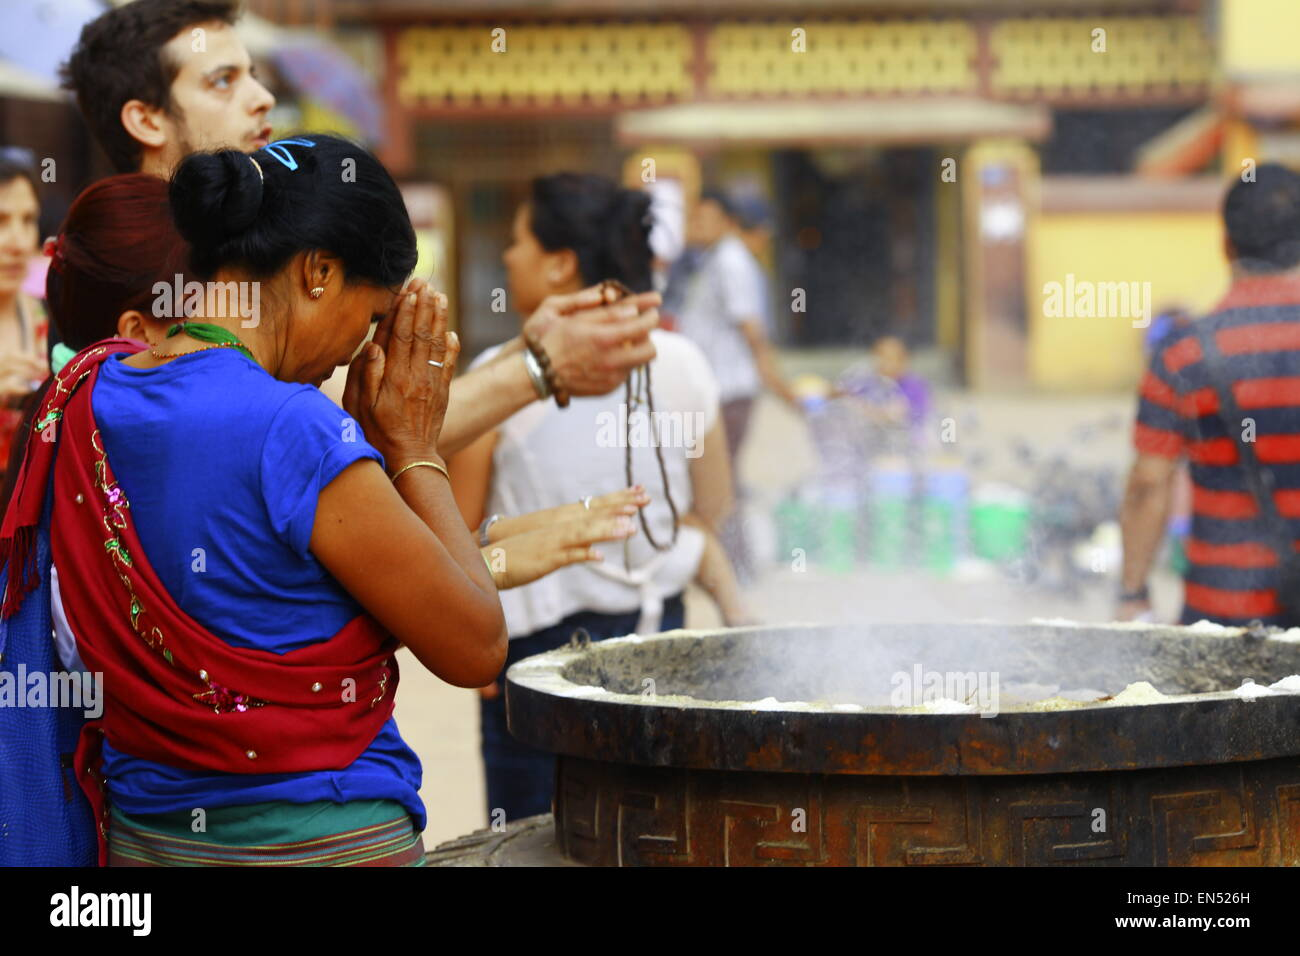 people praying in holly temple Boudanath in Nepal - Stock Image